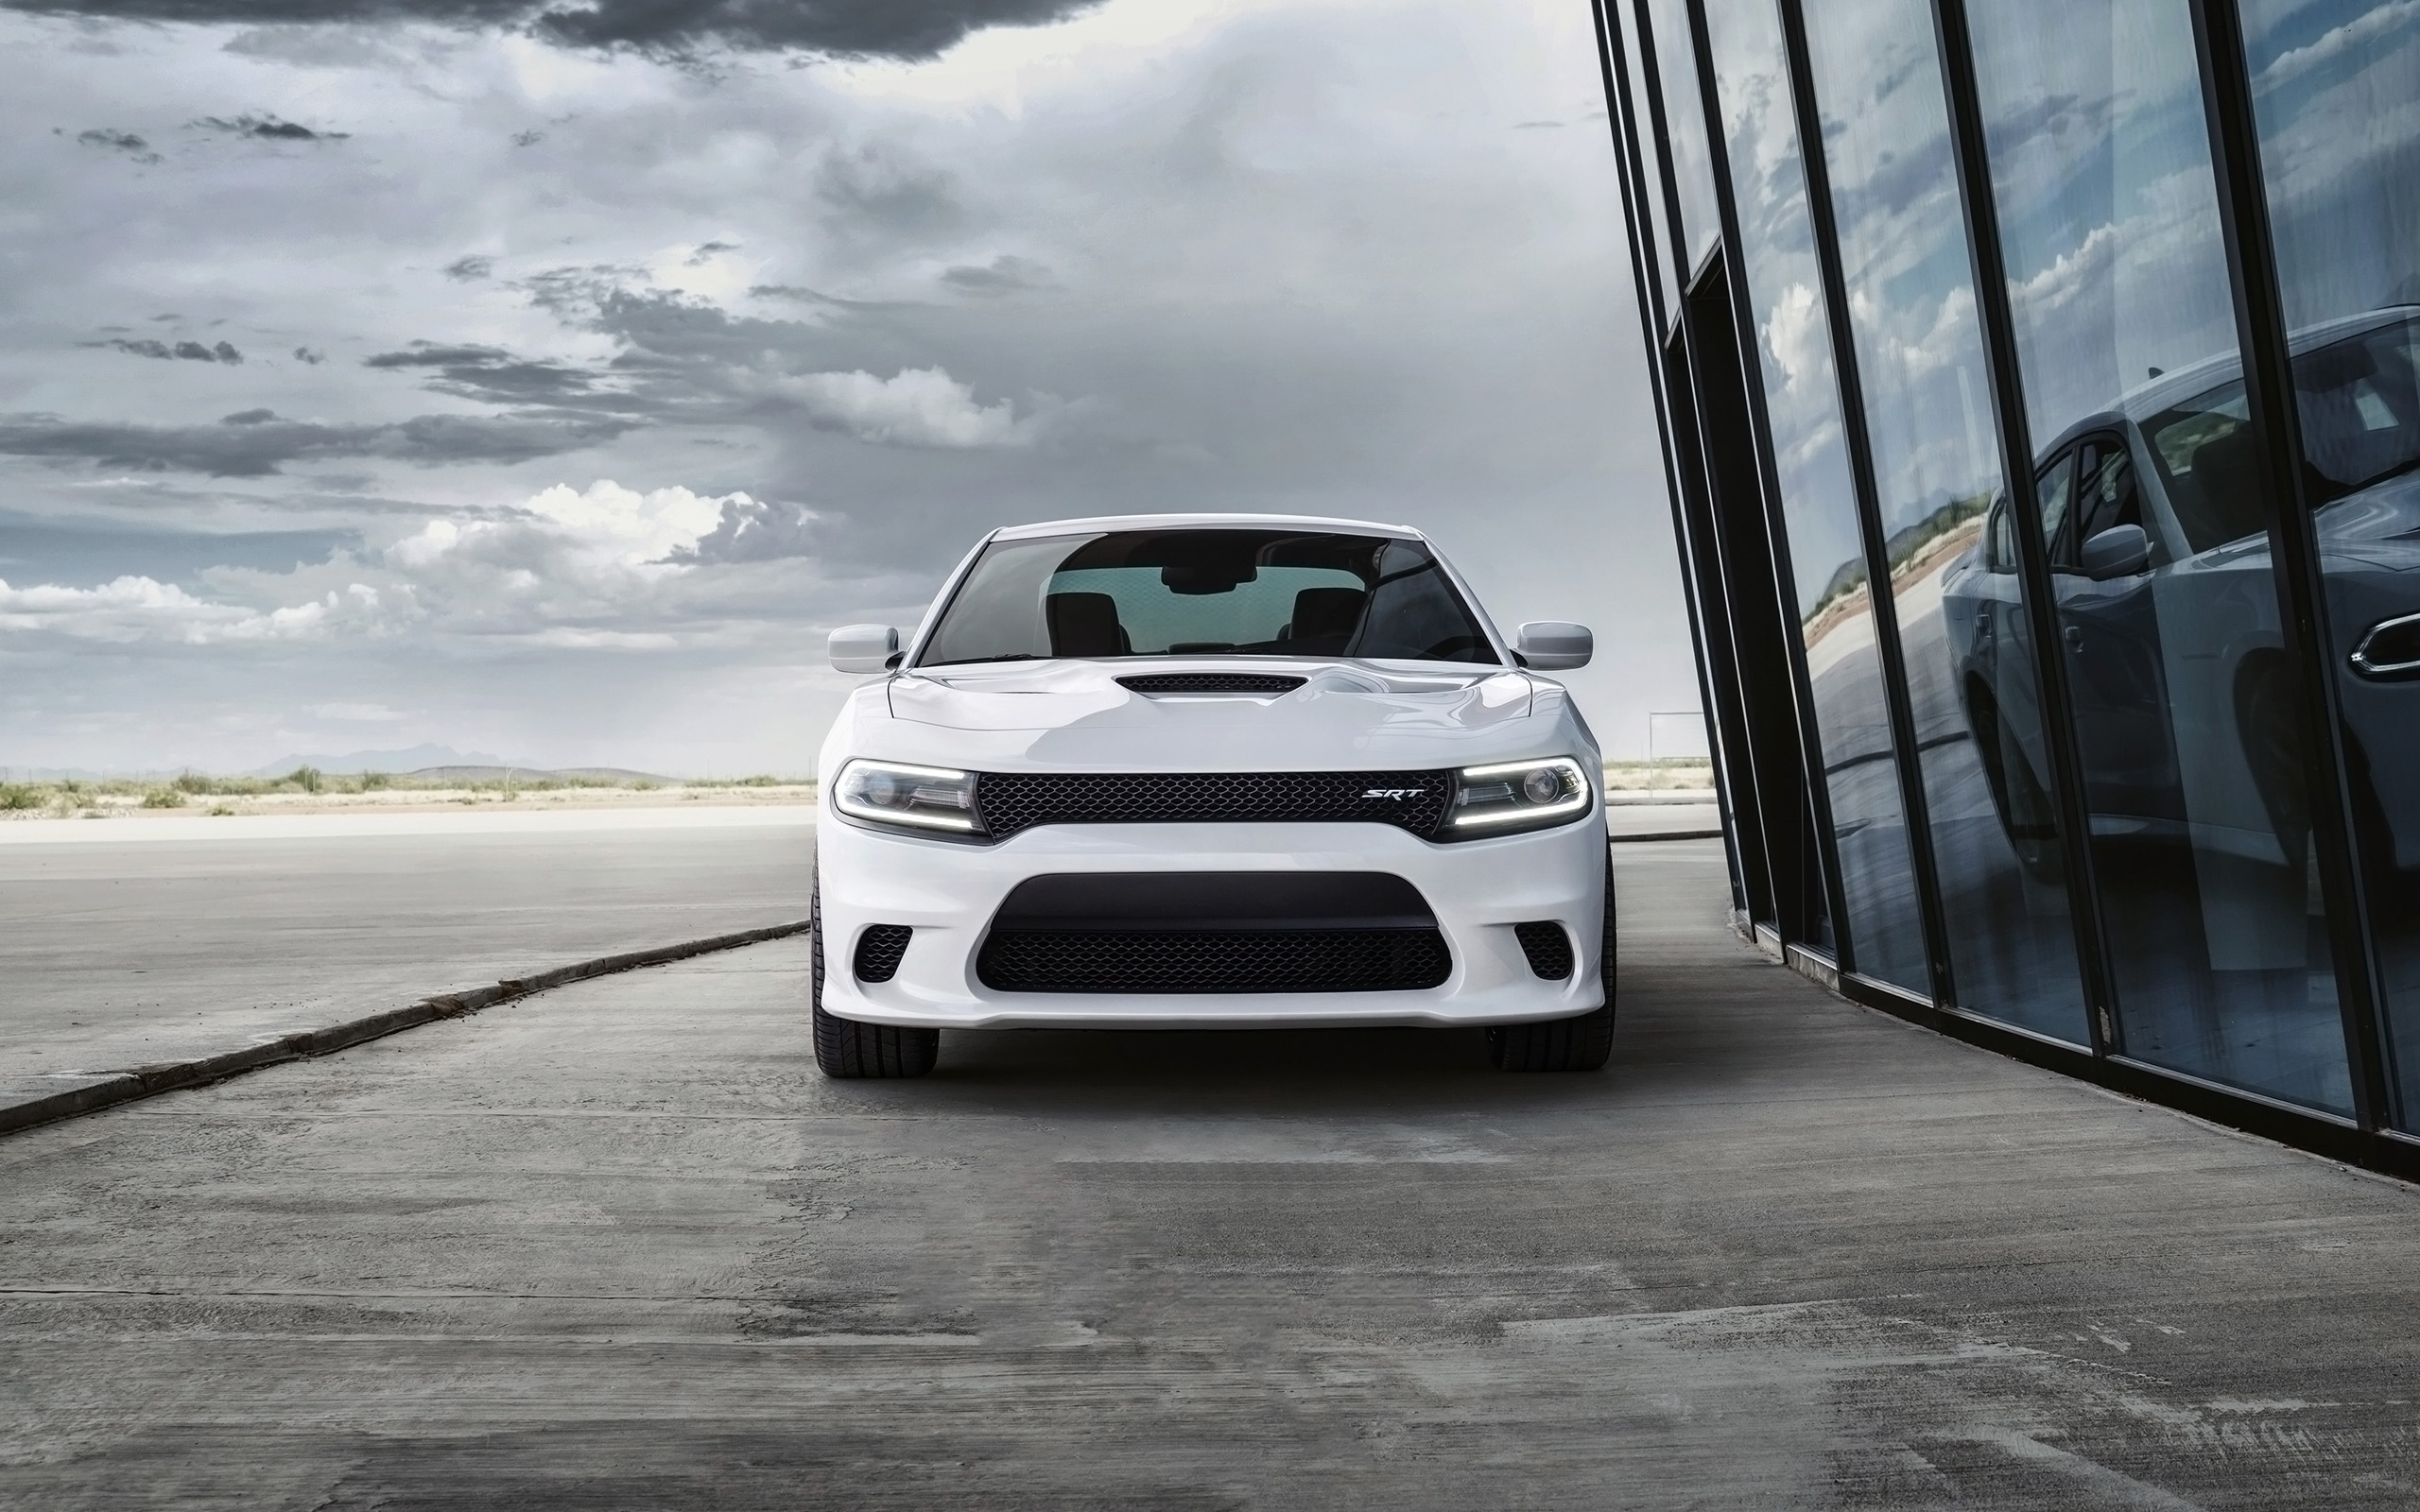 2015 dodge charger srt hellcat glass 6 2560x1600 wallpaper